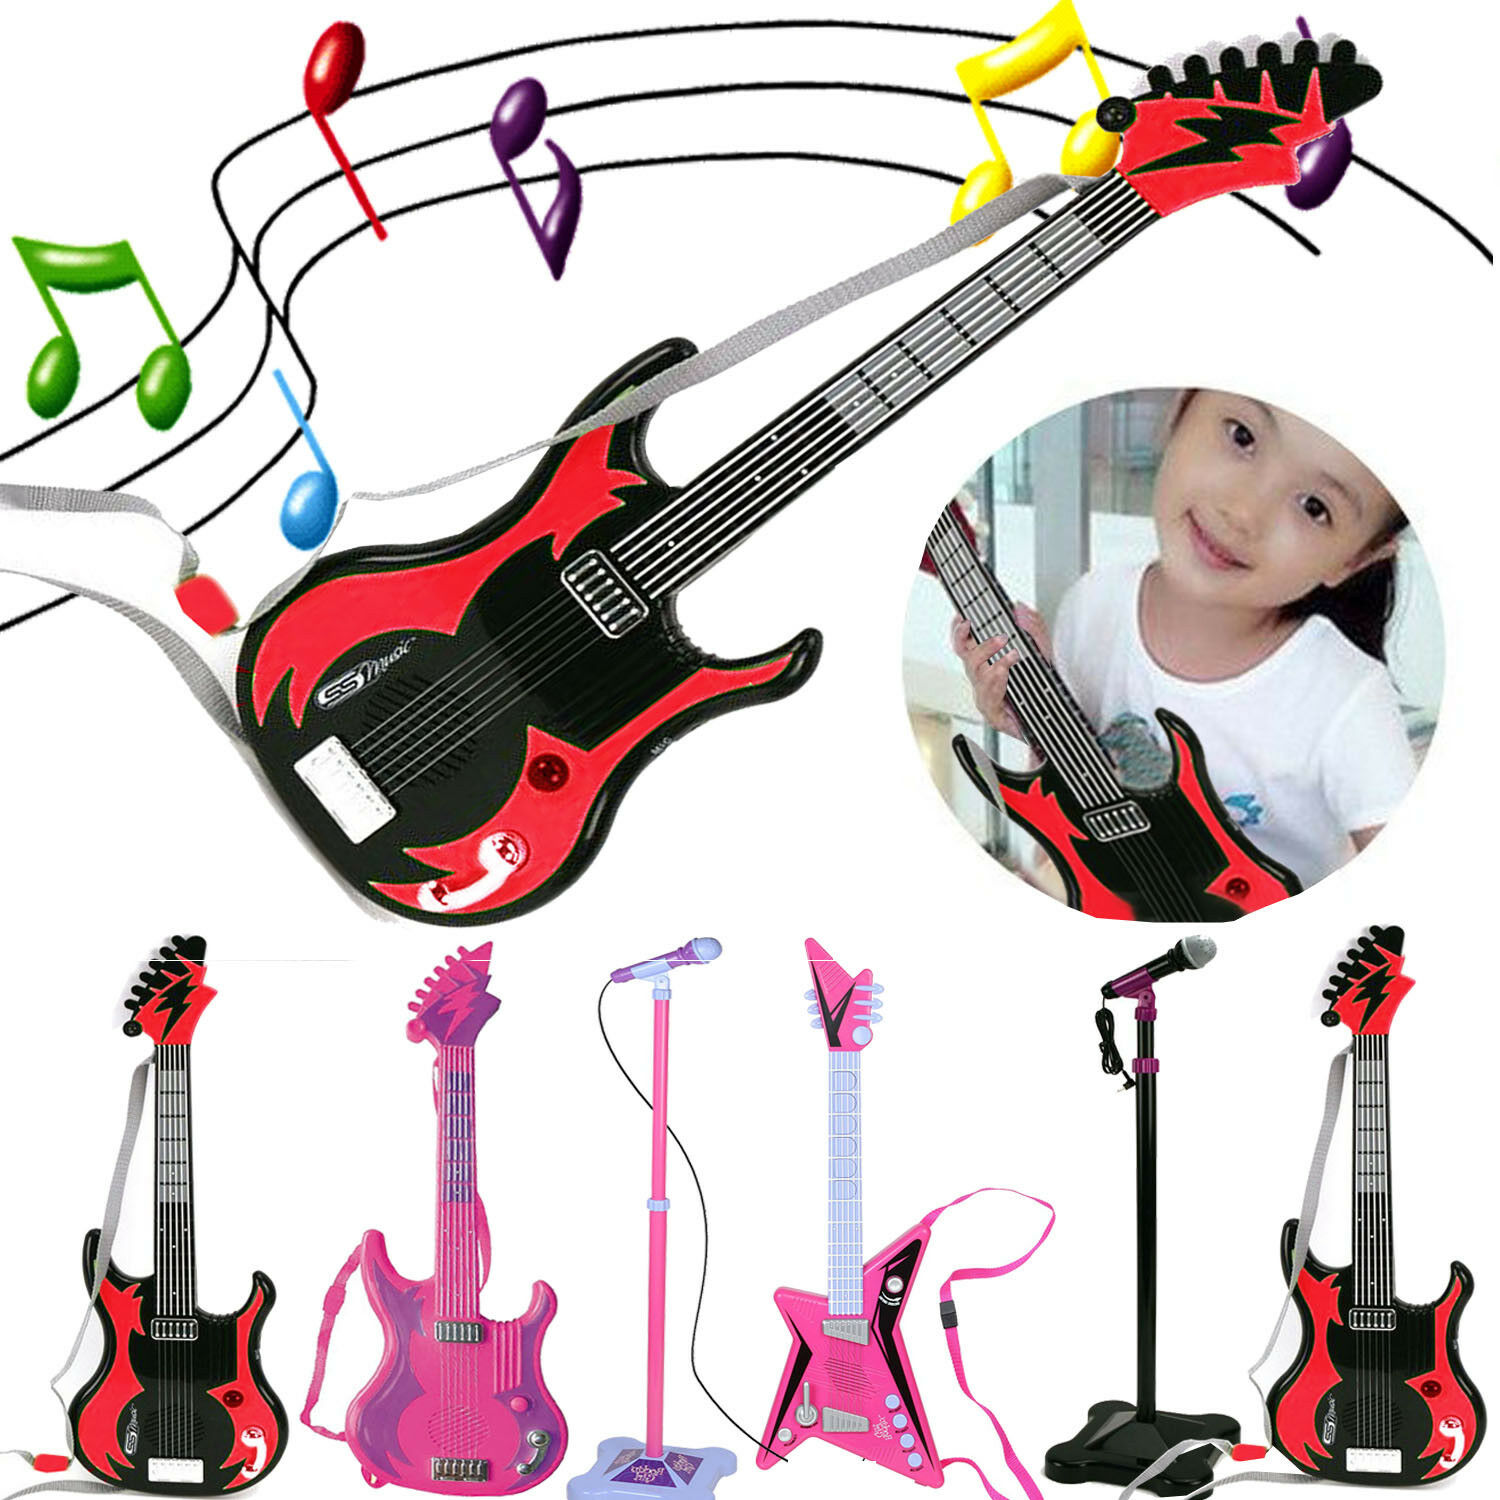 KIDS MUSICAL ART GUITARS STAGE MIC LEARNING INSTRUMENTS CREATIVE FUN PLAY TOY